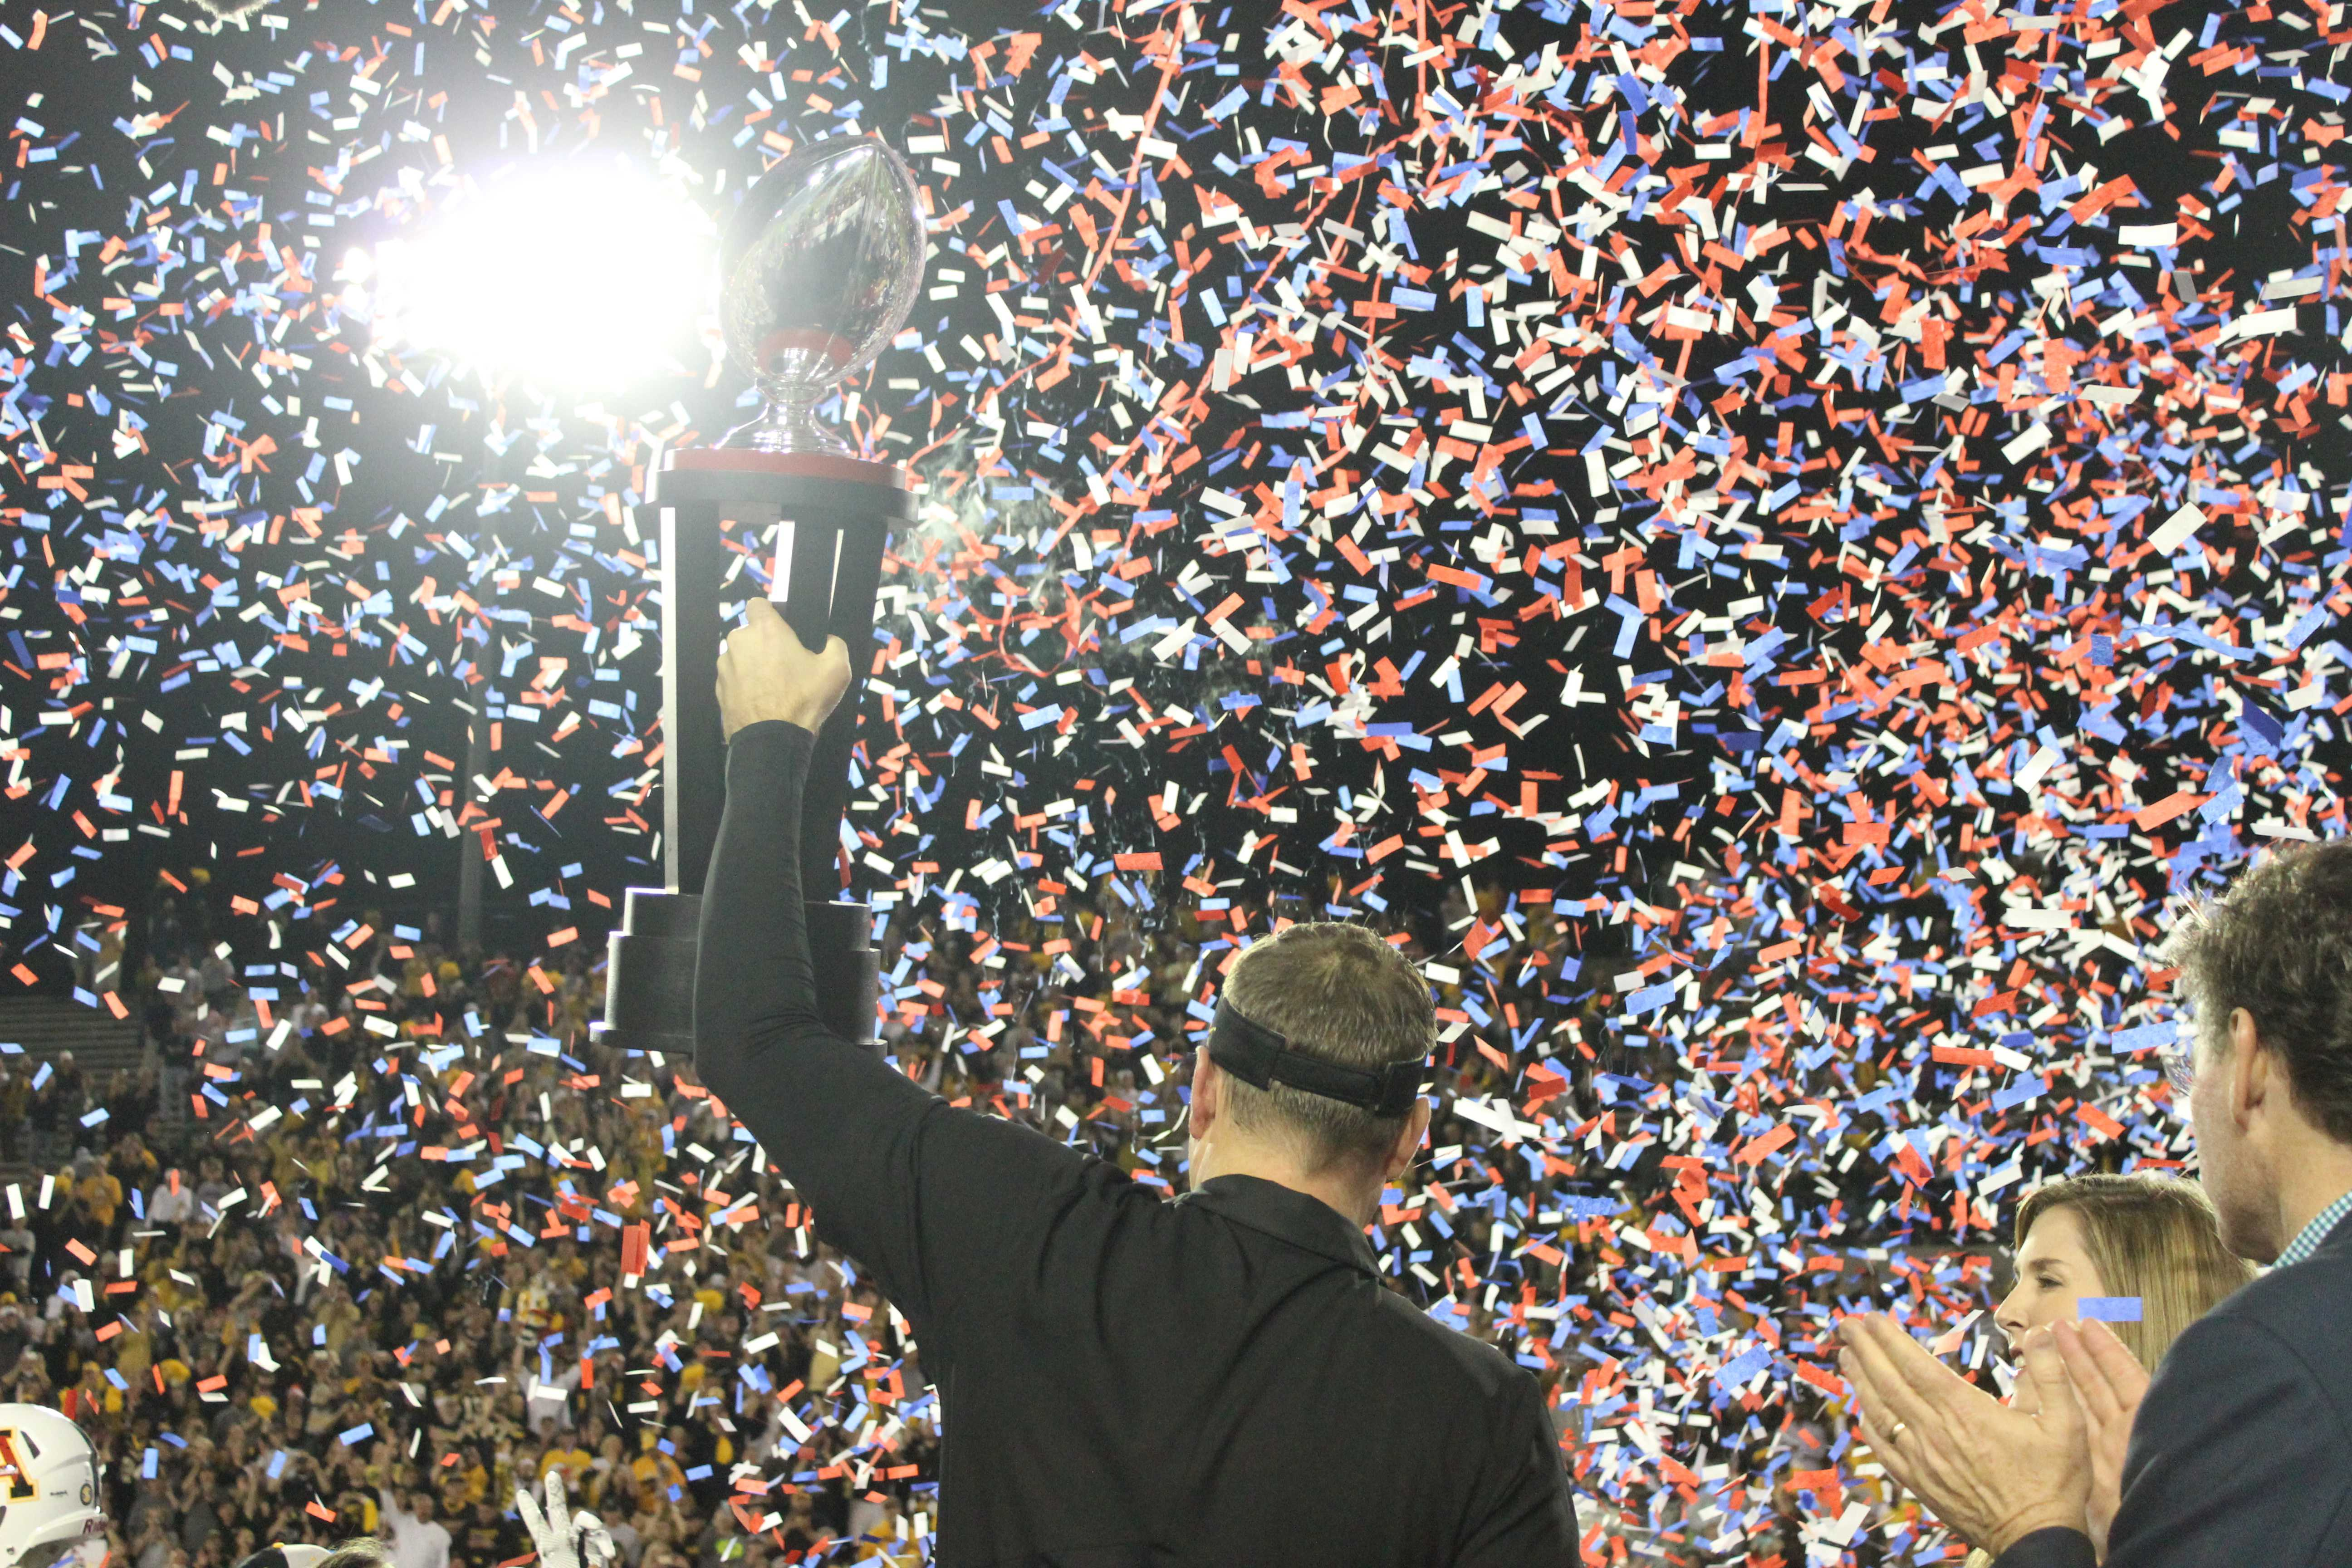 Scott Satterfield hoists the Camellia Bowl trophy for the second consecutive season.